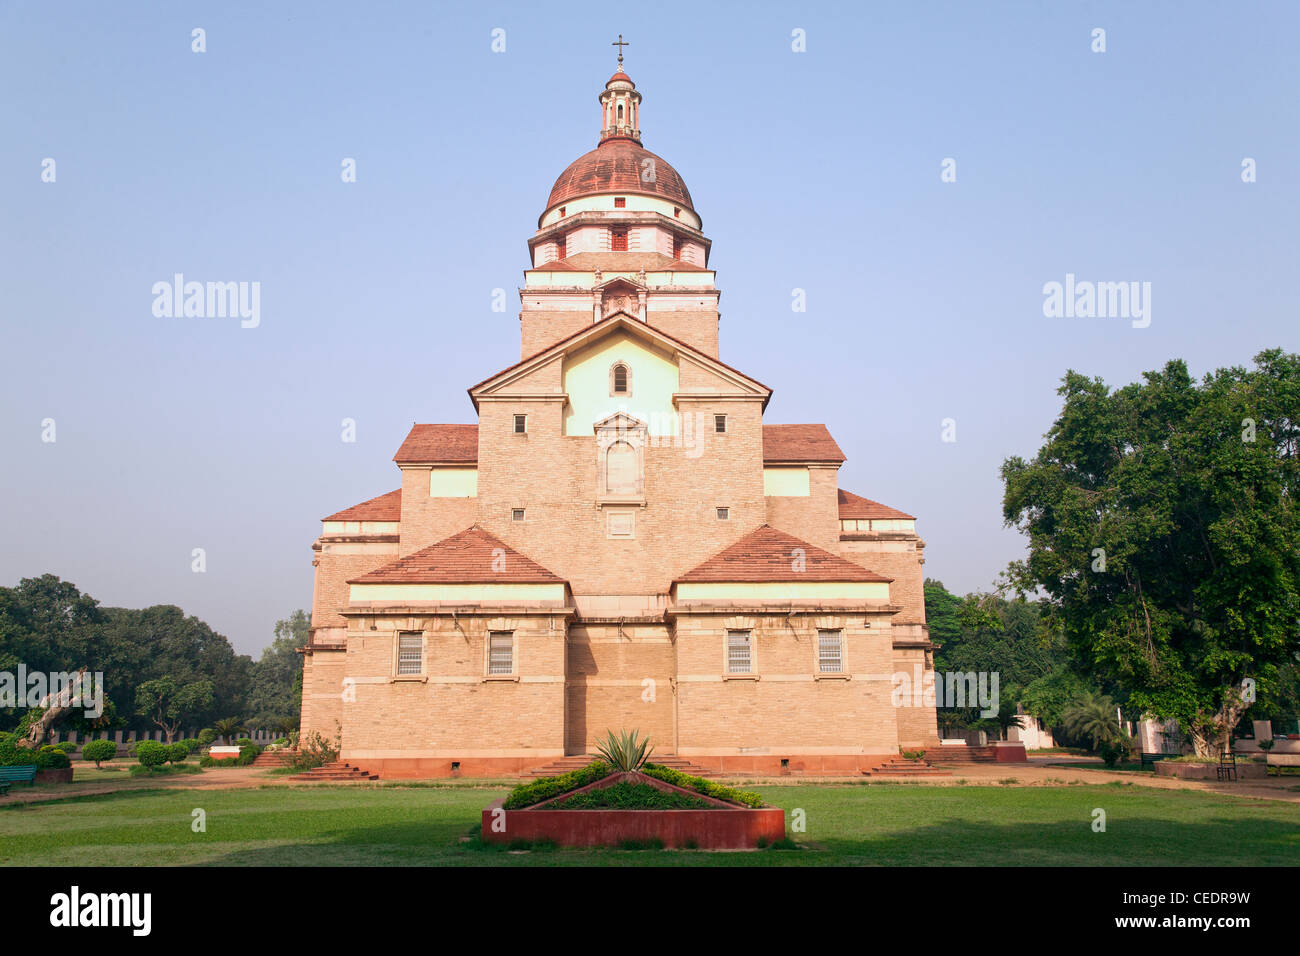 India, Delhi, Rajpath, Redemption Cathedral (Cathedral Church of the Redemption) - Stock Image